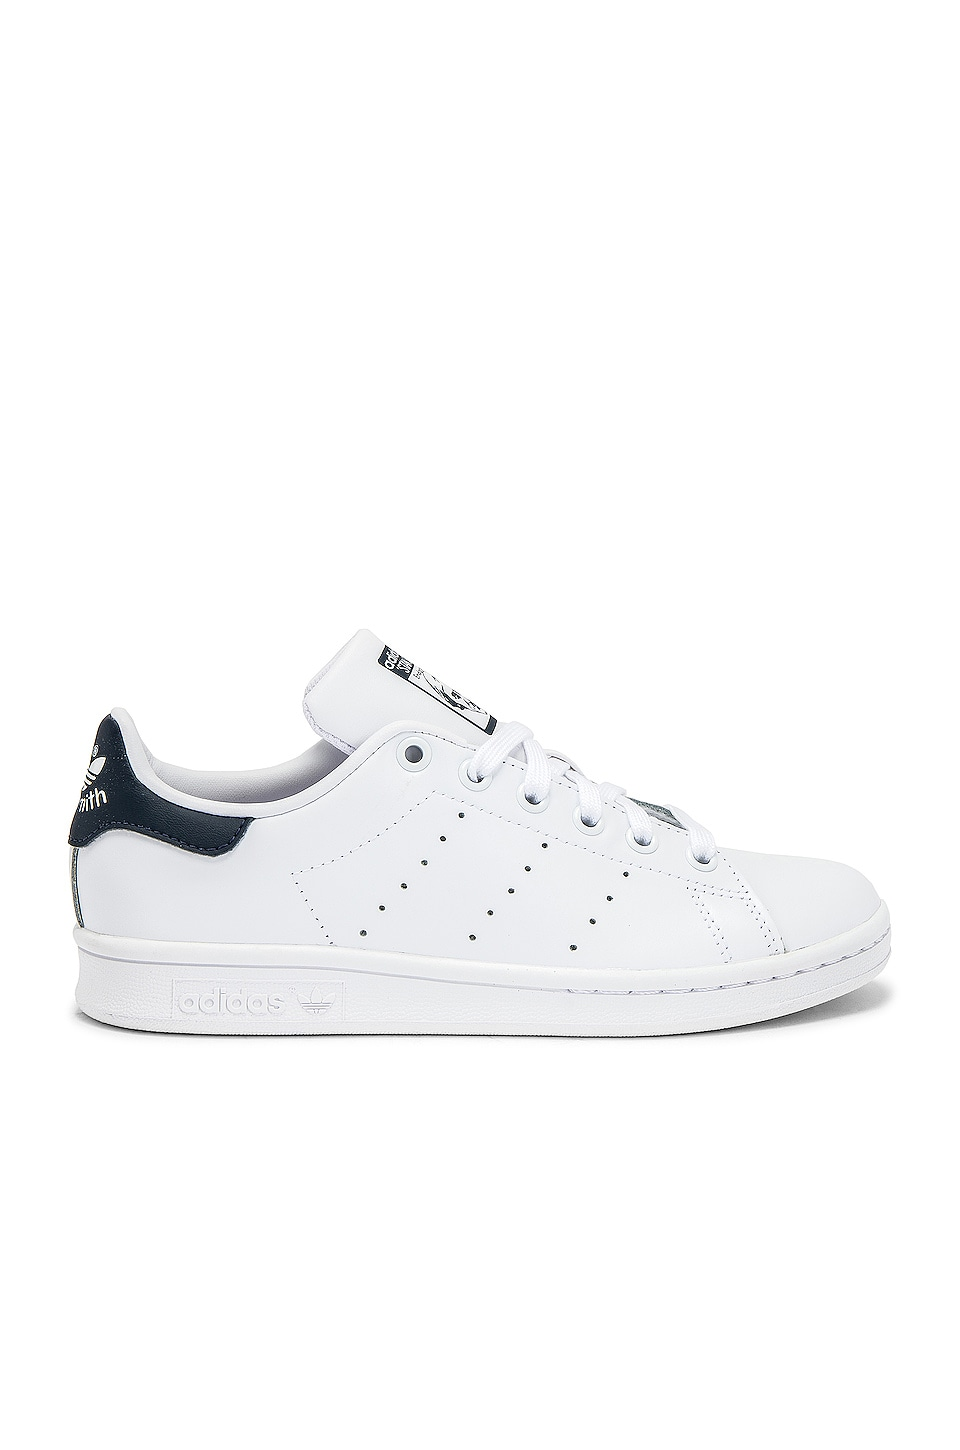 adidas Originals Stan Smith Sneaker in White & Dark Blue